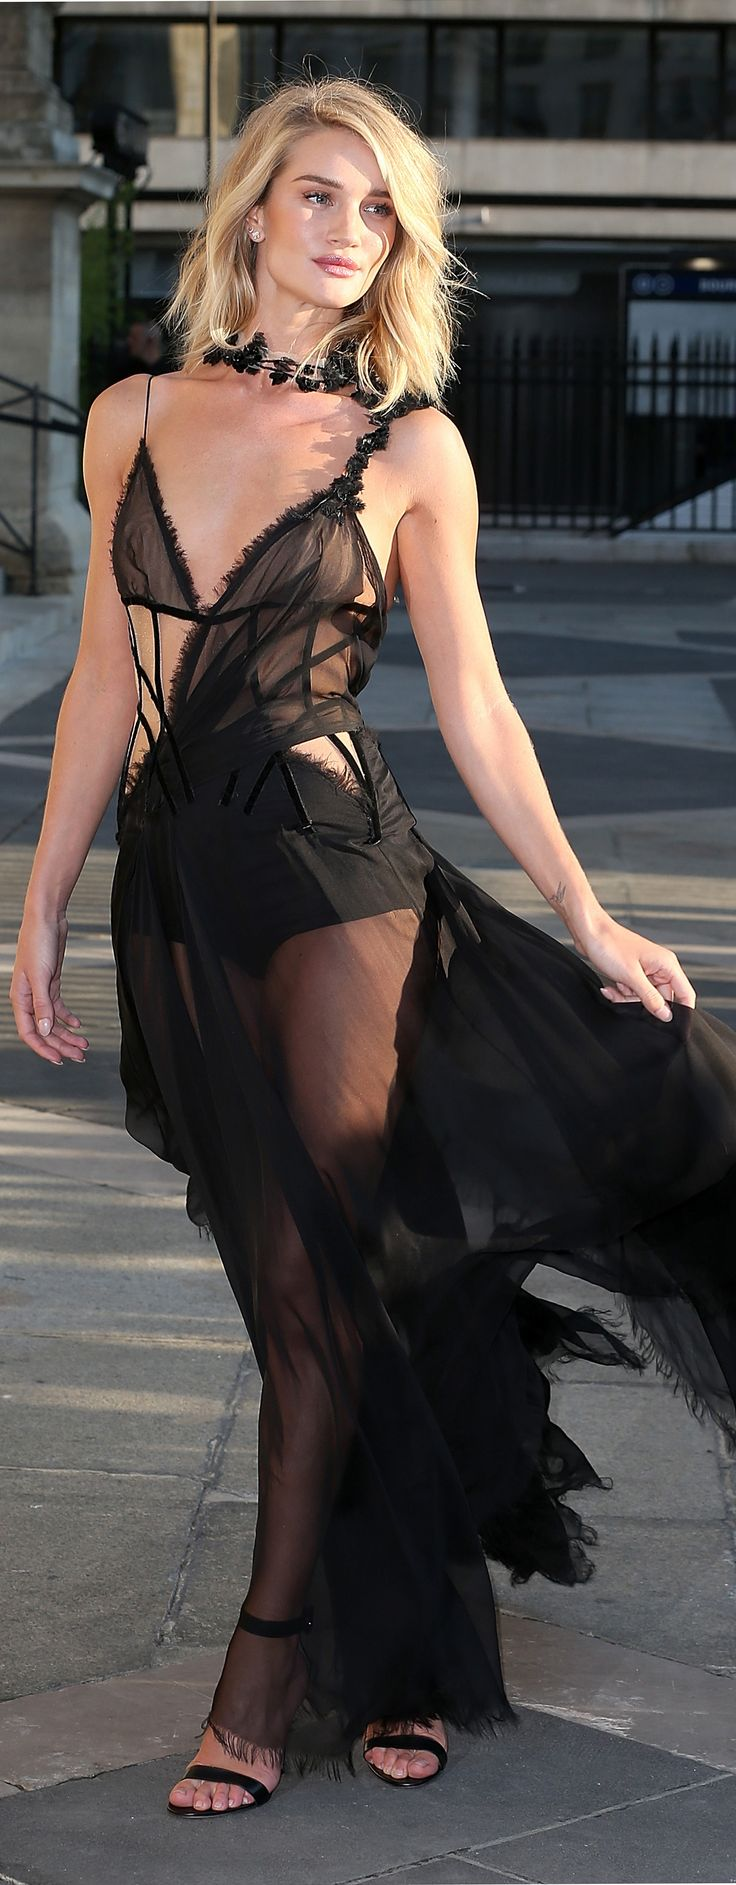 Rosie Huntington-Whiteley made a big entrance to Versace with a stunning black see-through gown.